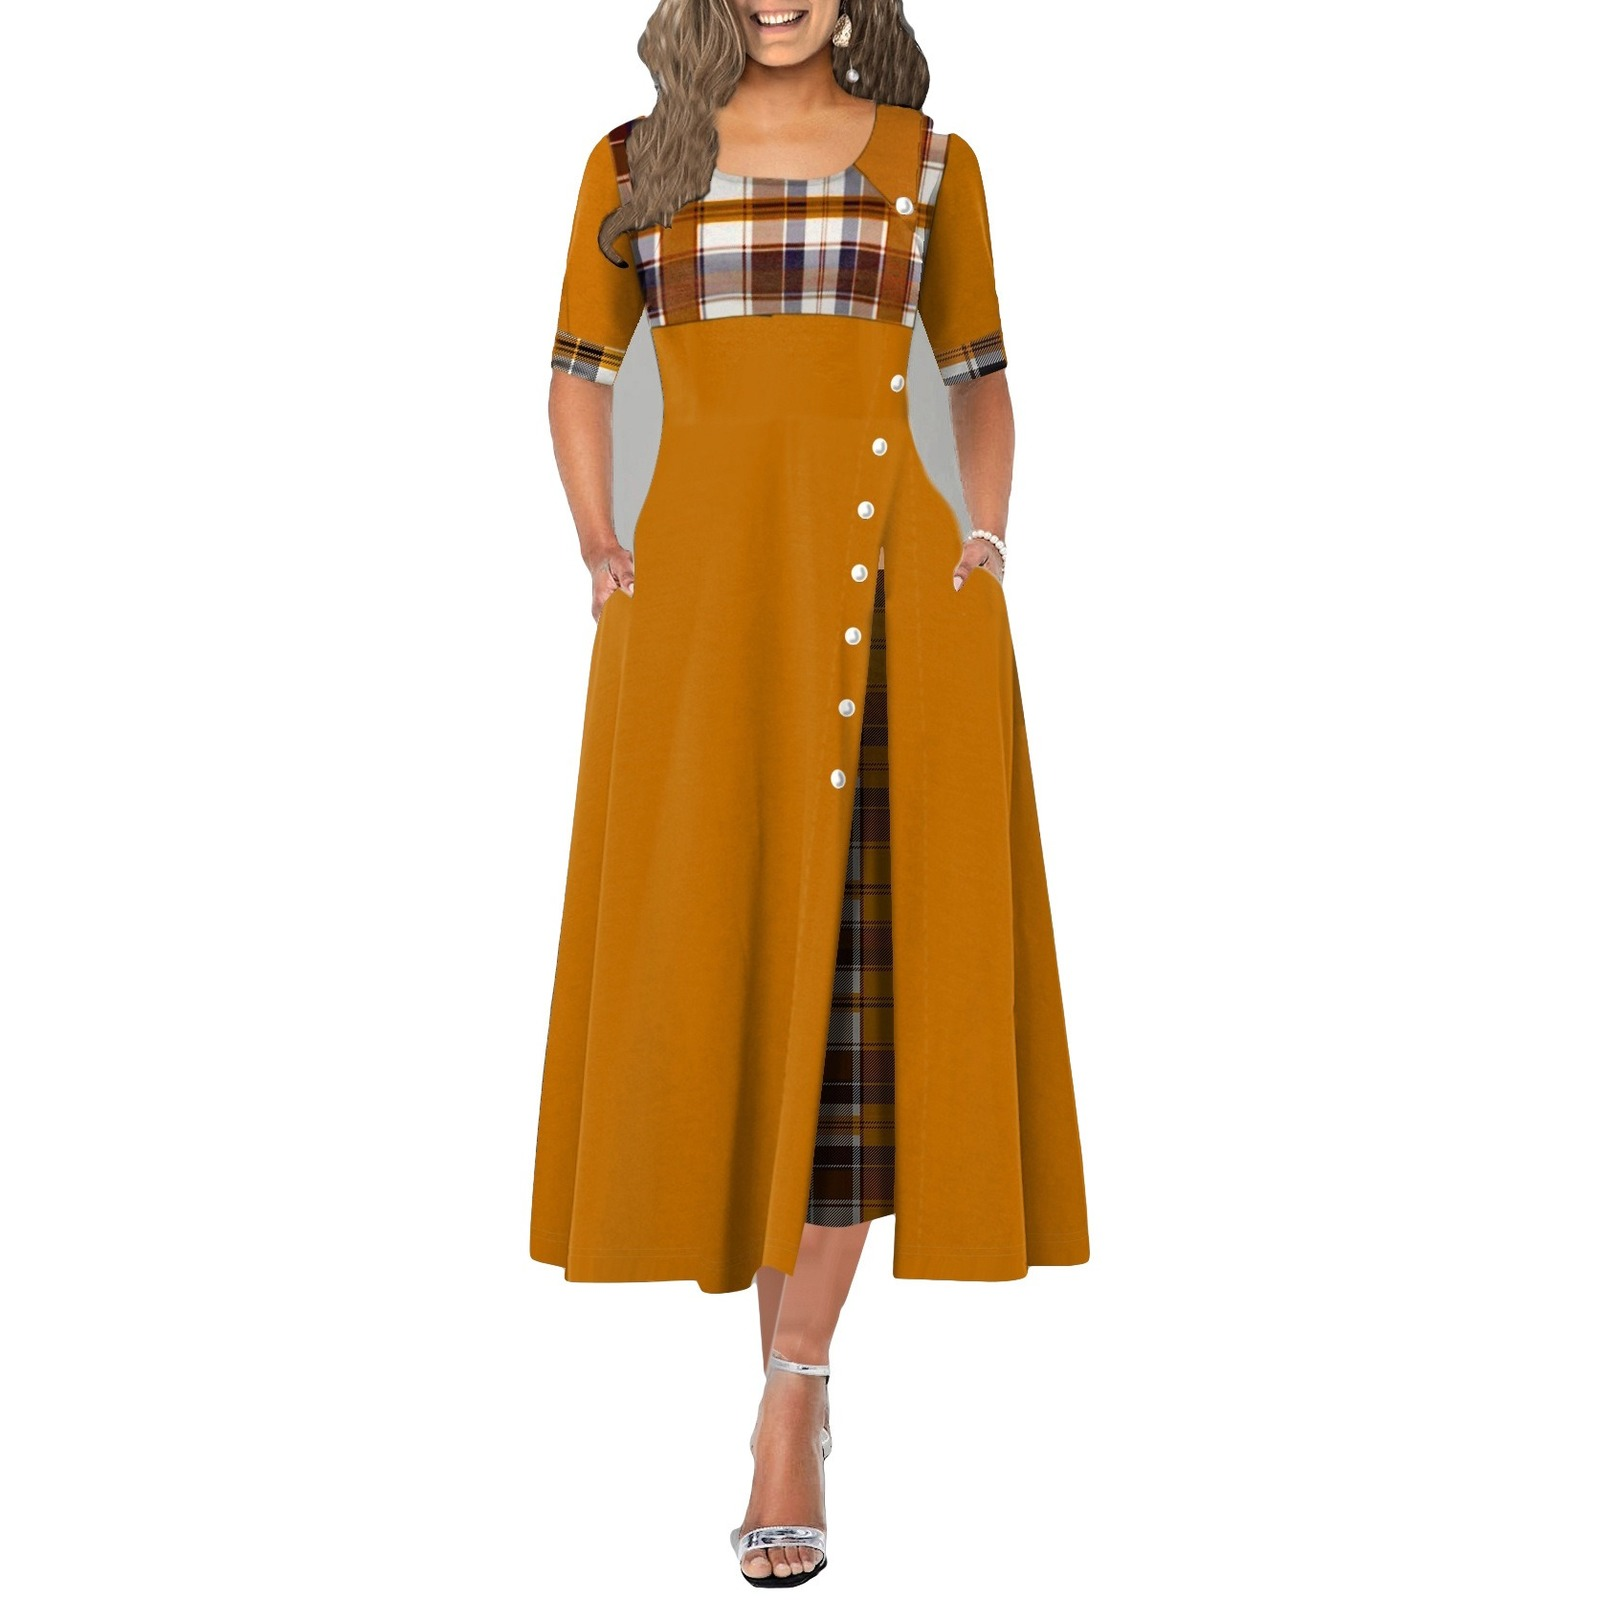 Round Neck Contrast Sleeve Irregular Long Dress for Ladies Girls Woman Cloth with Plaid and Button Decoration